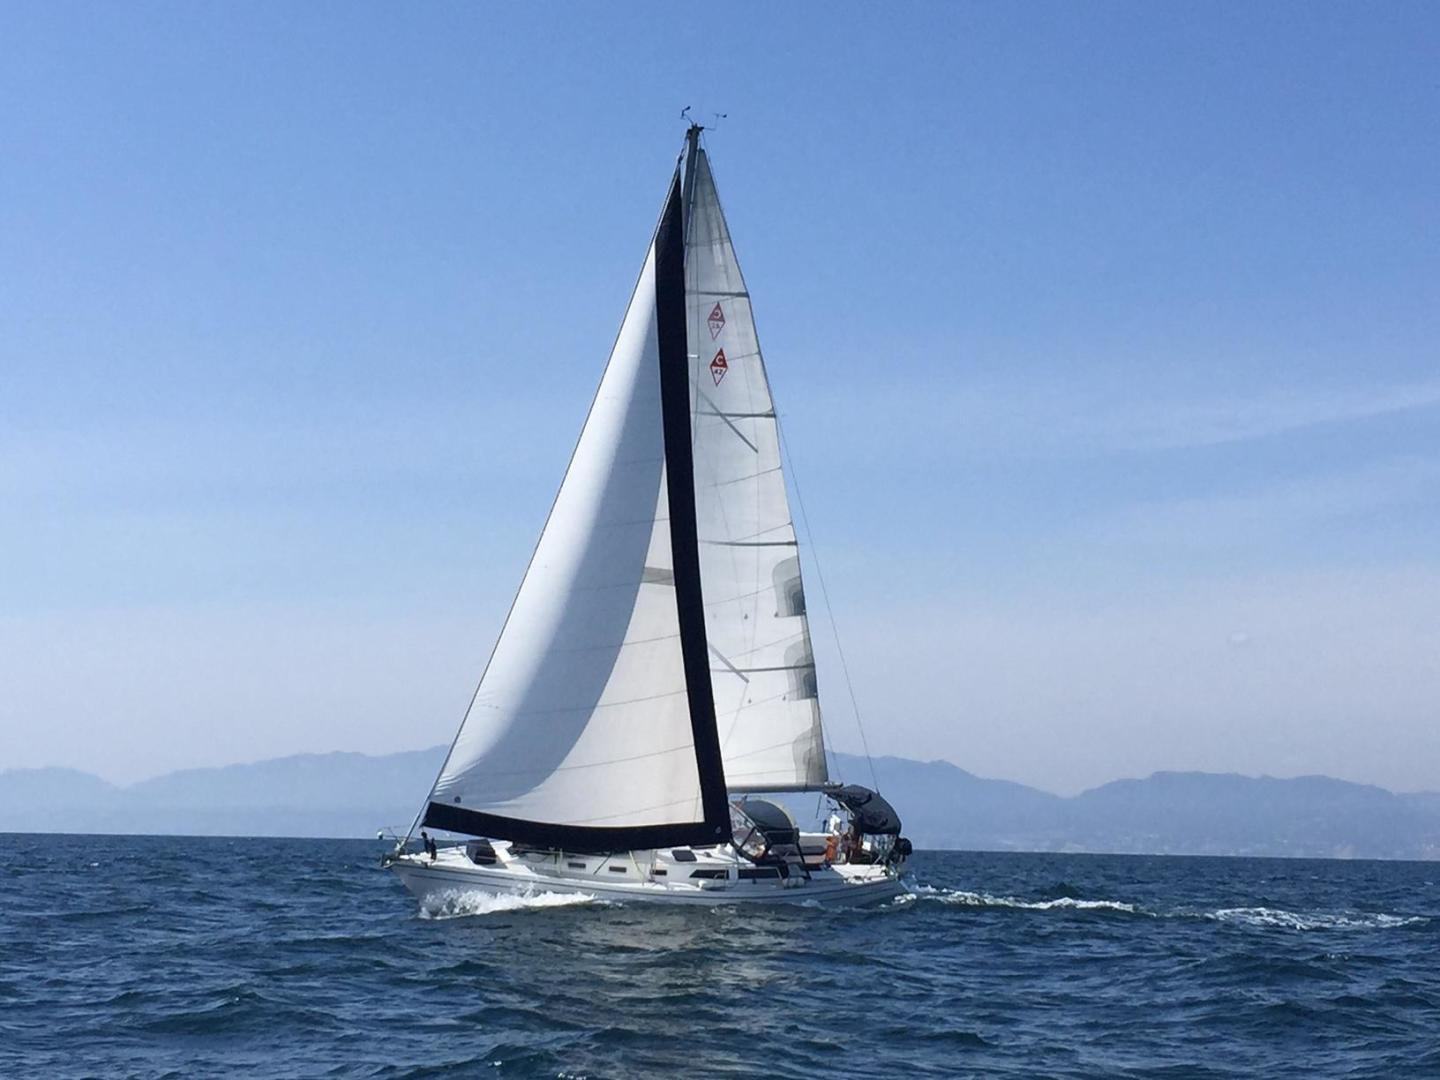 Catalina Sailboats for Sale 81 as of Saturday, September 7